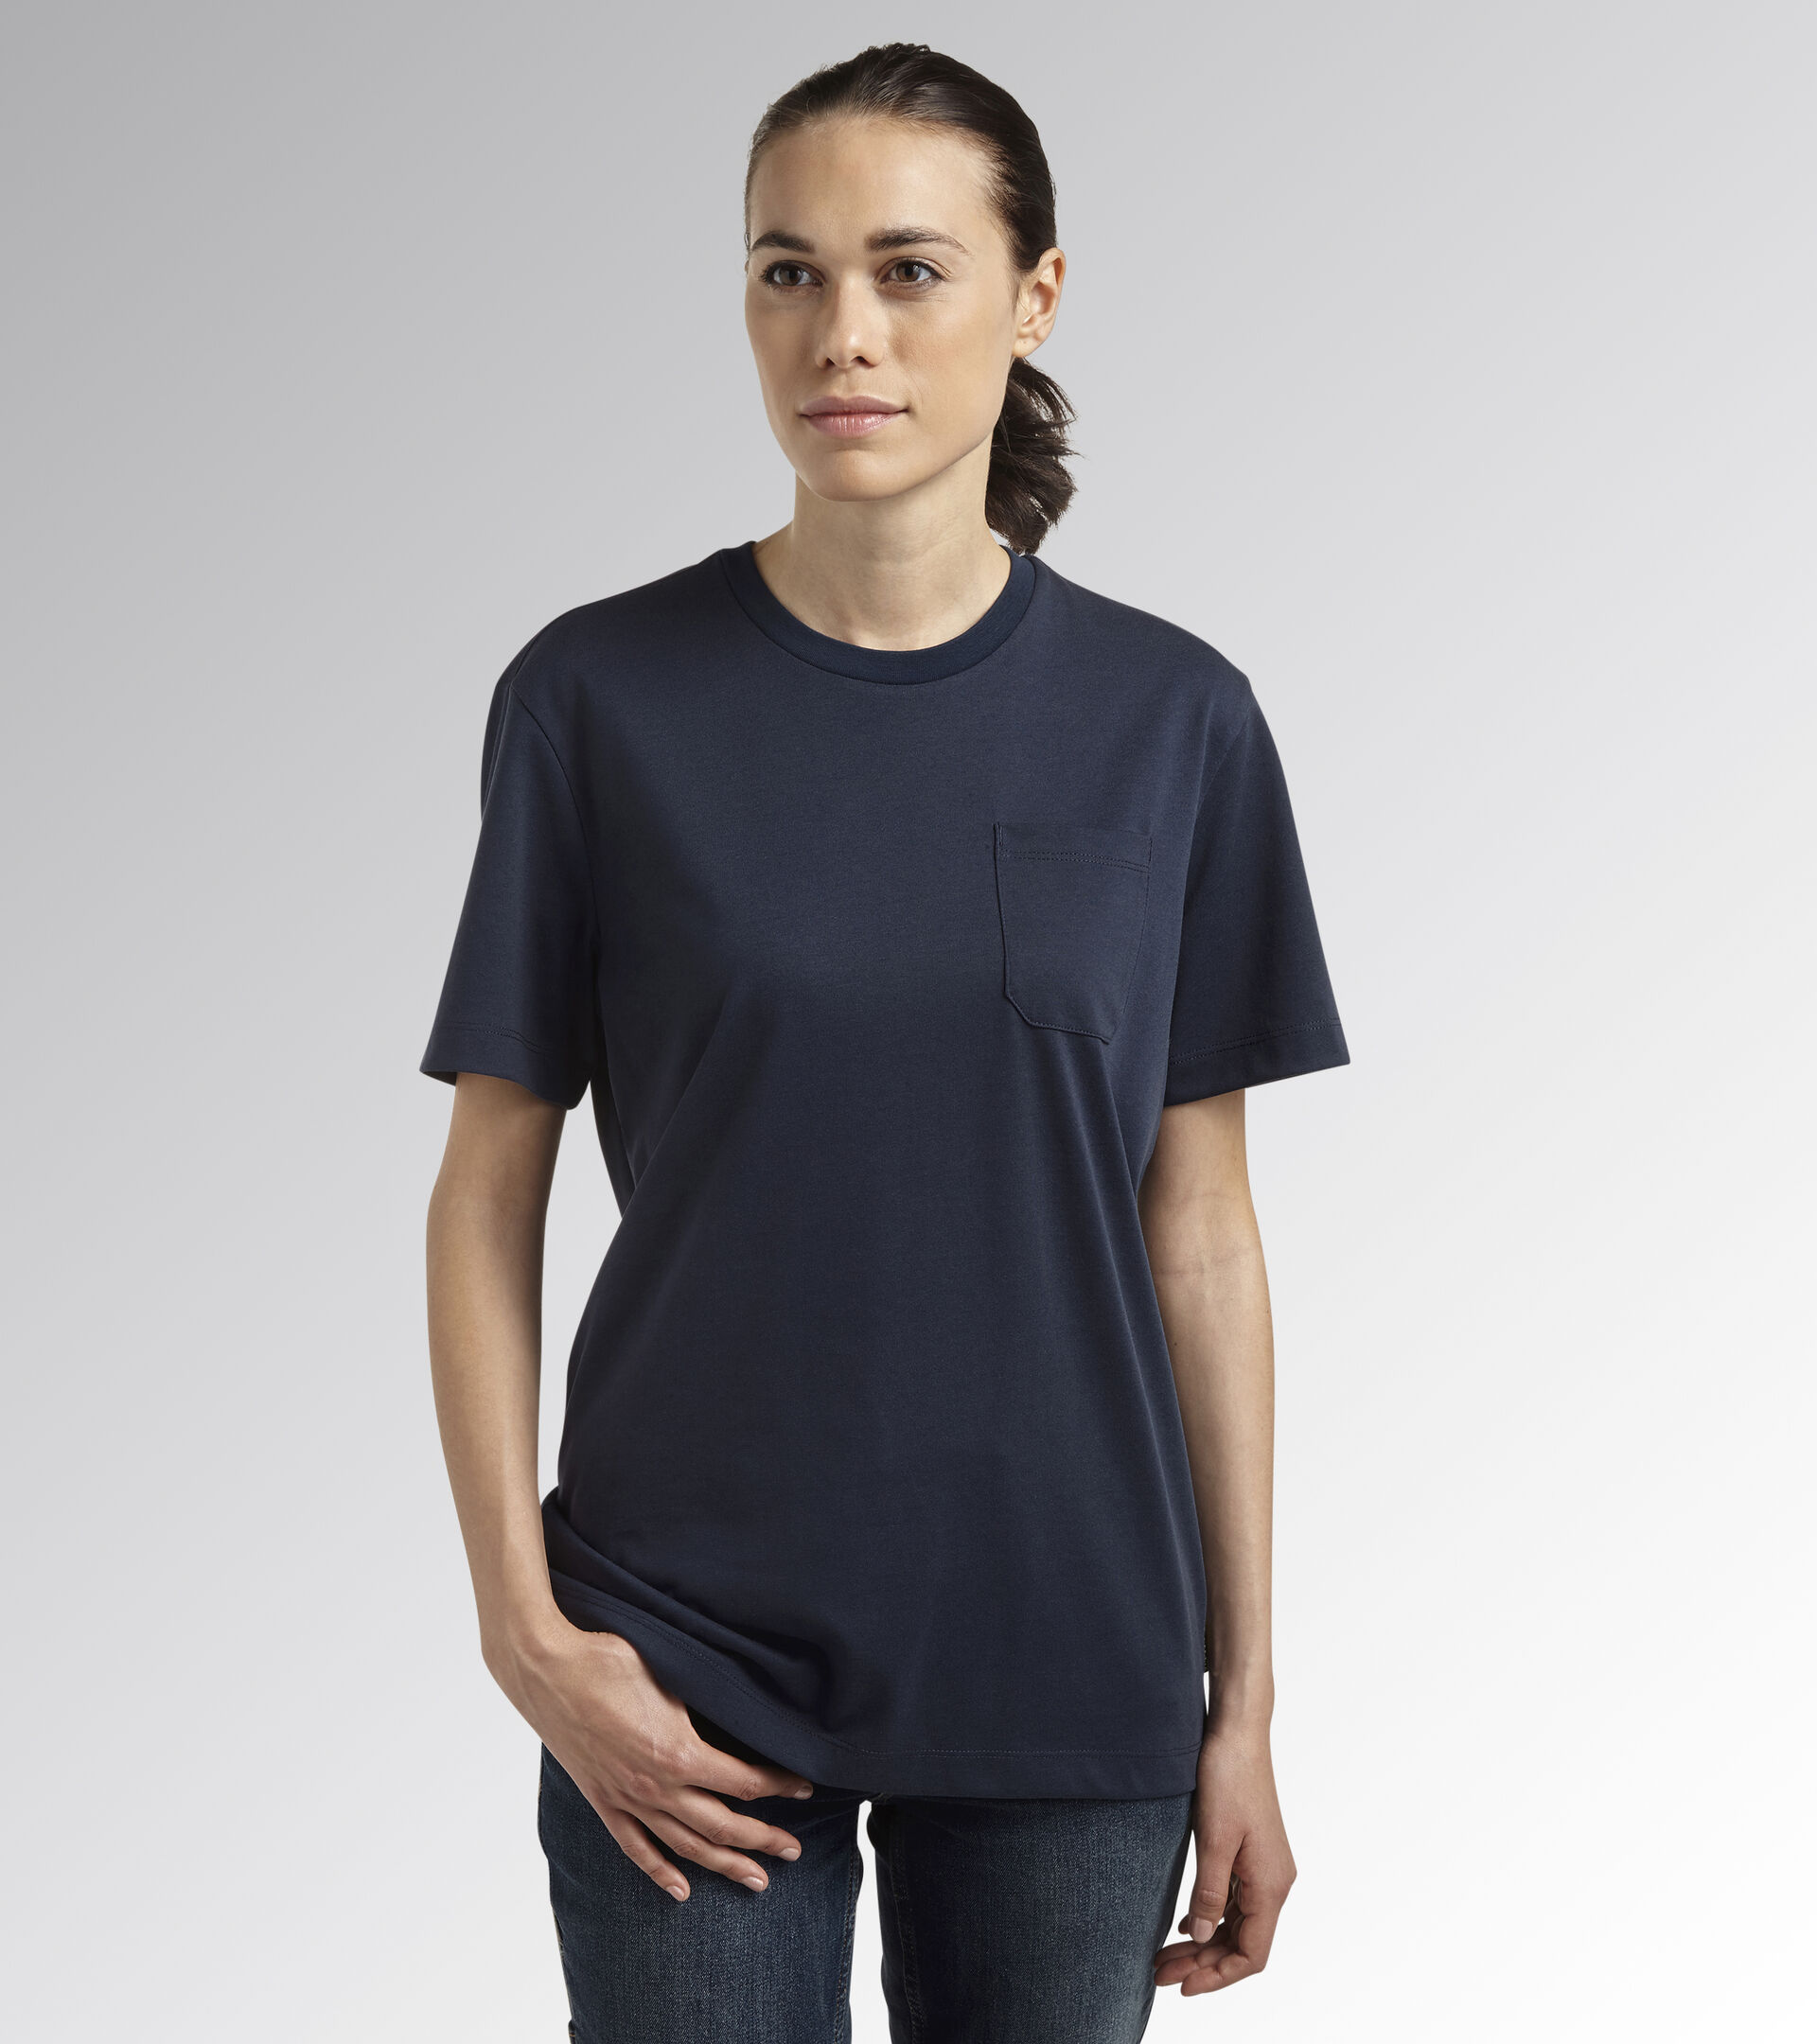 Apparel Utility UOMO T-SHIRT INDUSTRY CLASSIC NAVY Utility